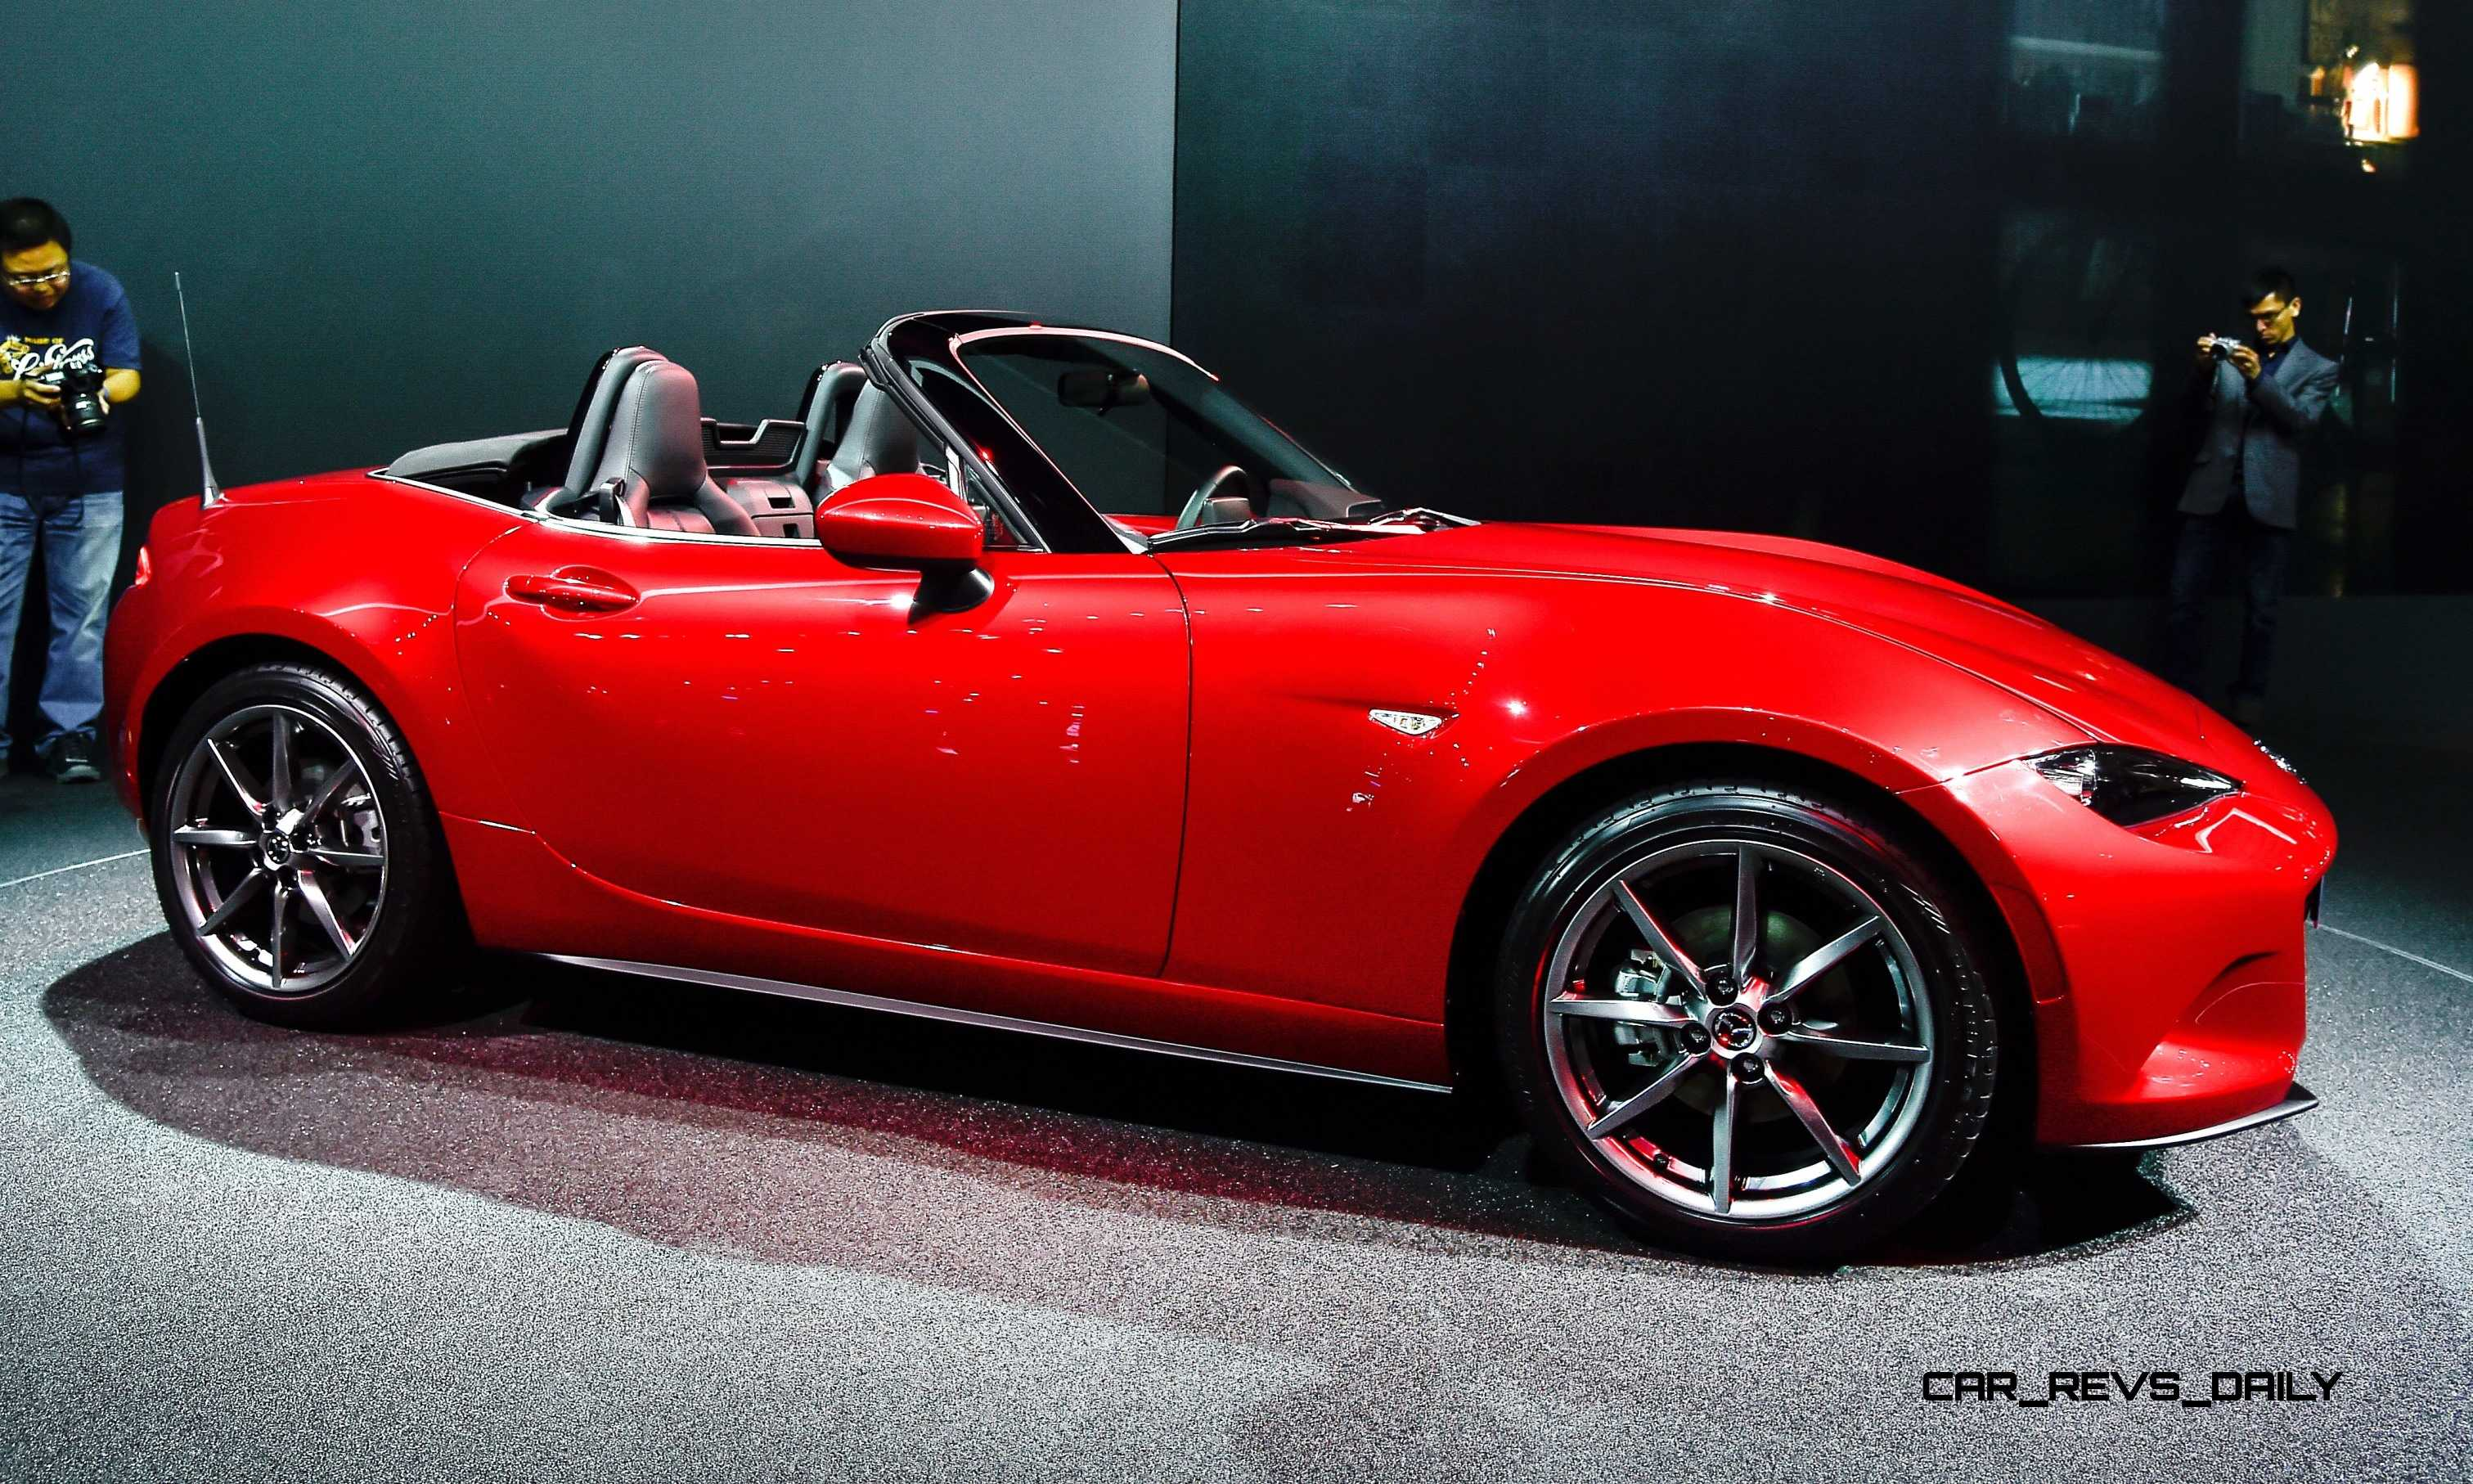 Autoblog Sned Some Of These Fantastic Photos At The Live Reveal Last Night Which Give A Much Nicer Mx 5 To Look Forward